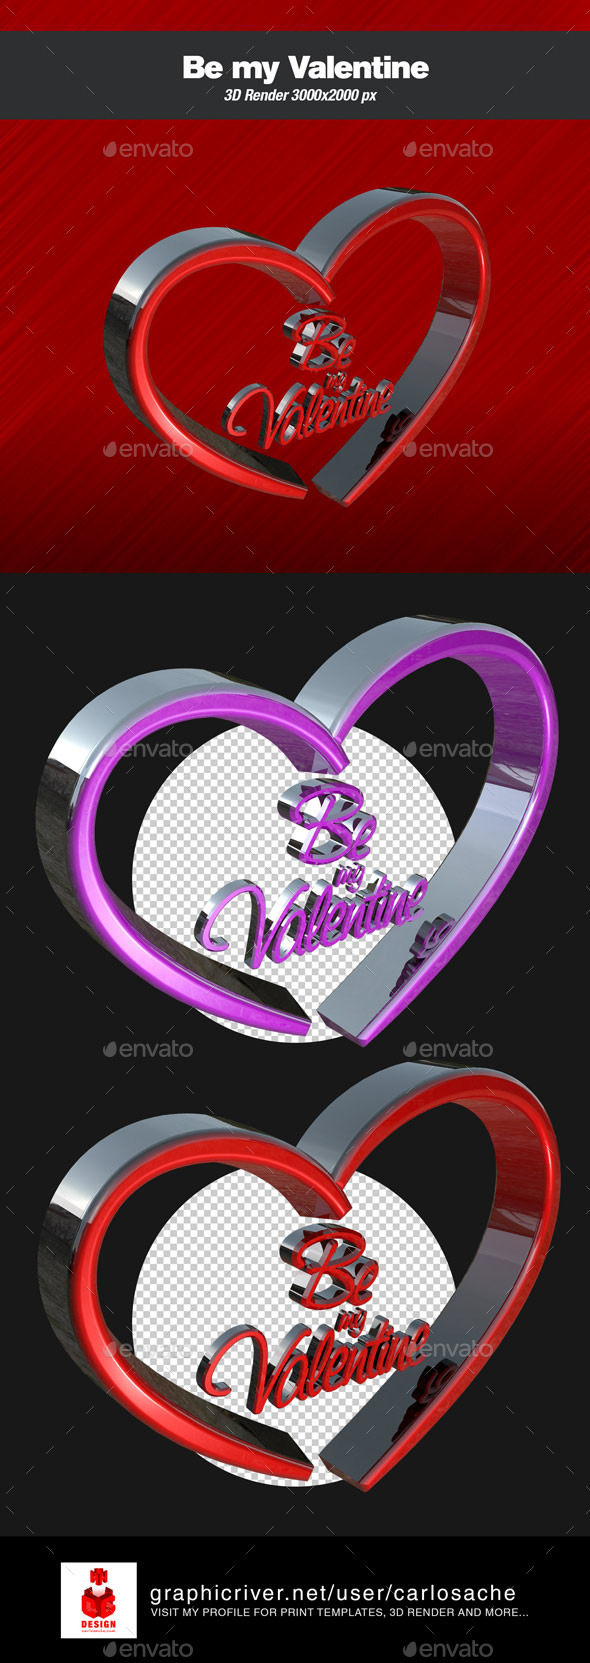 Be my Valentine - 3D Render Text - Objects 3D Renders